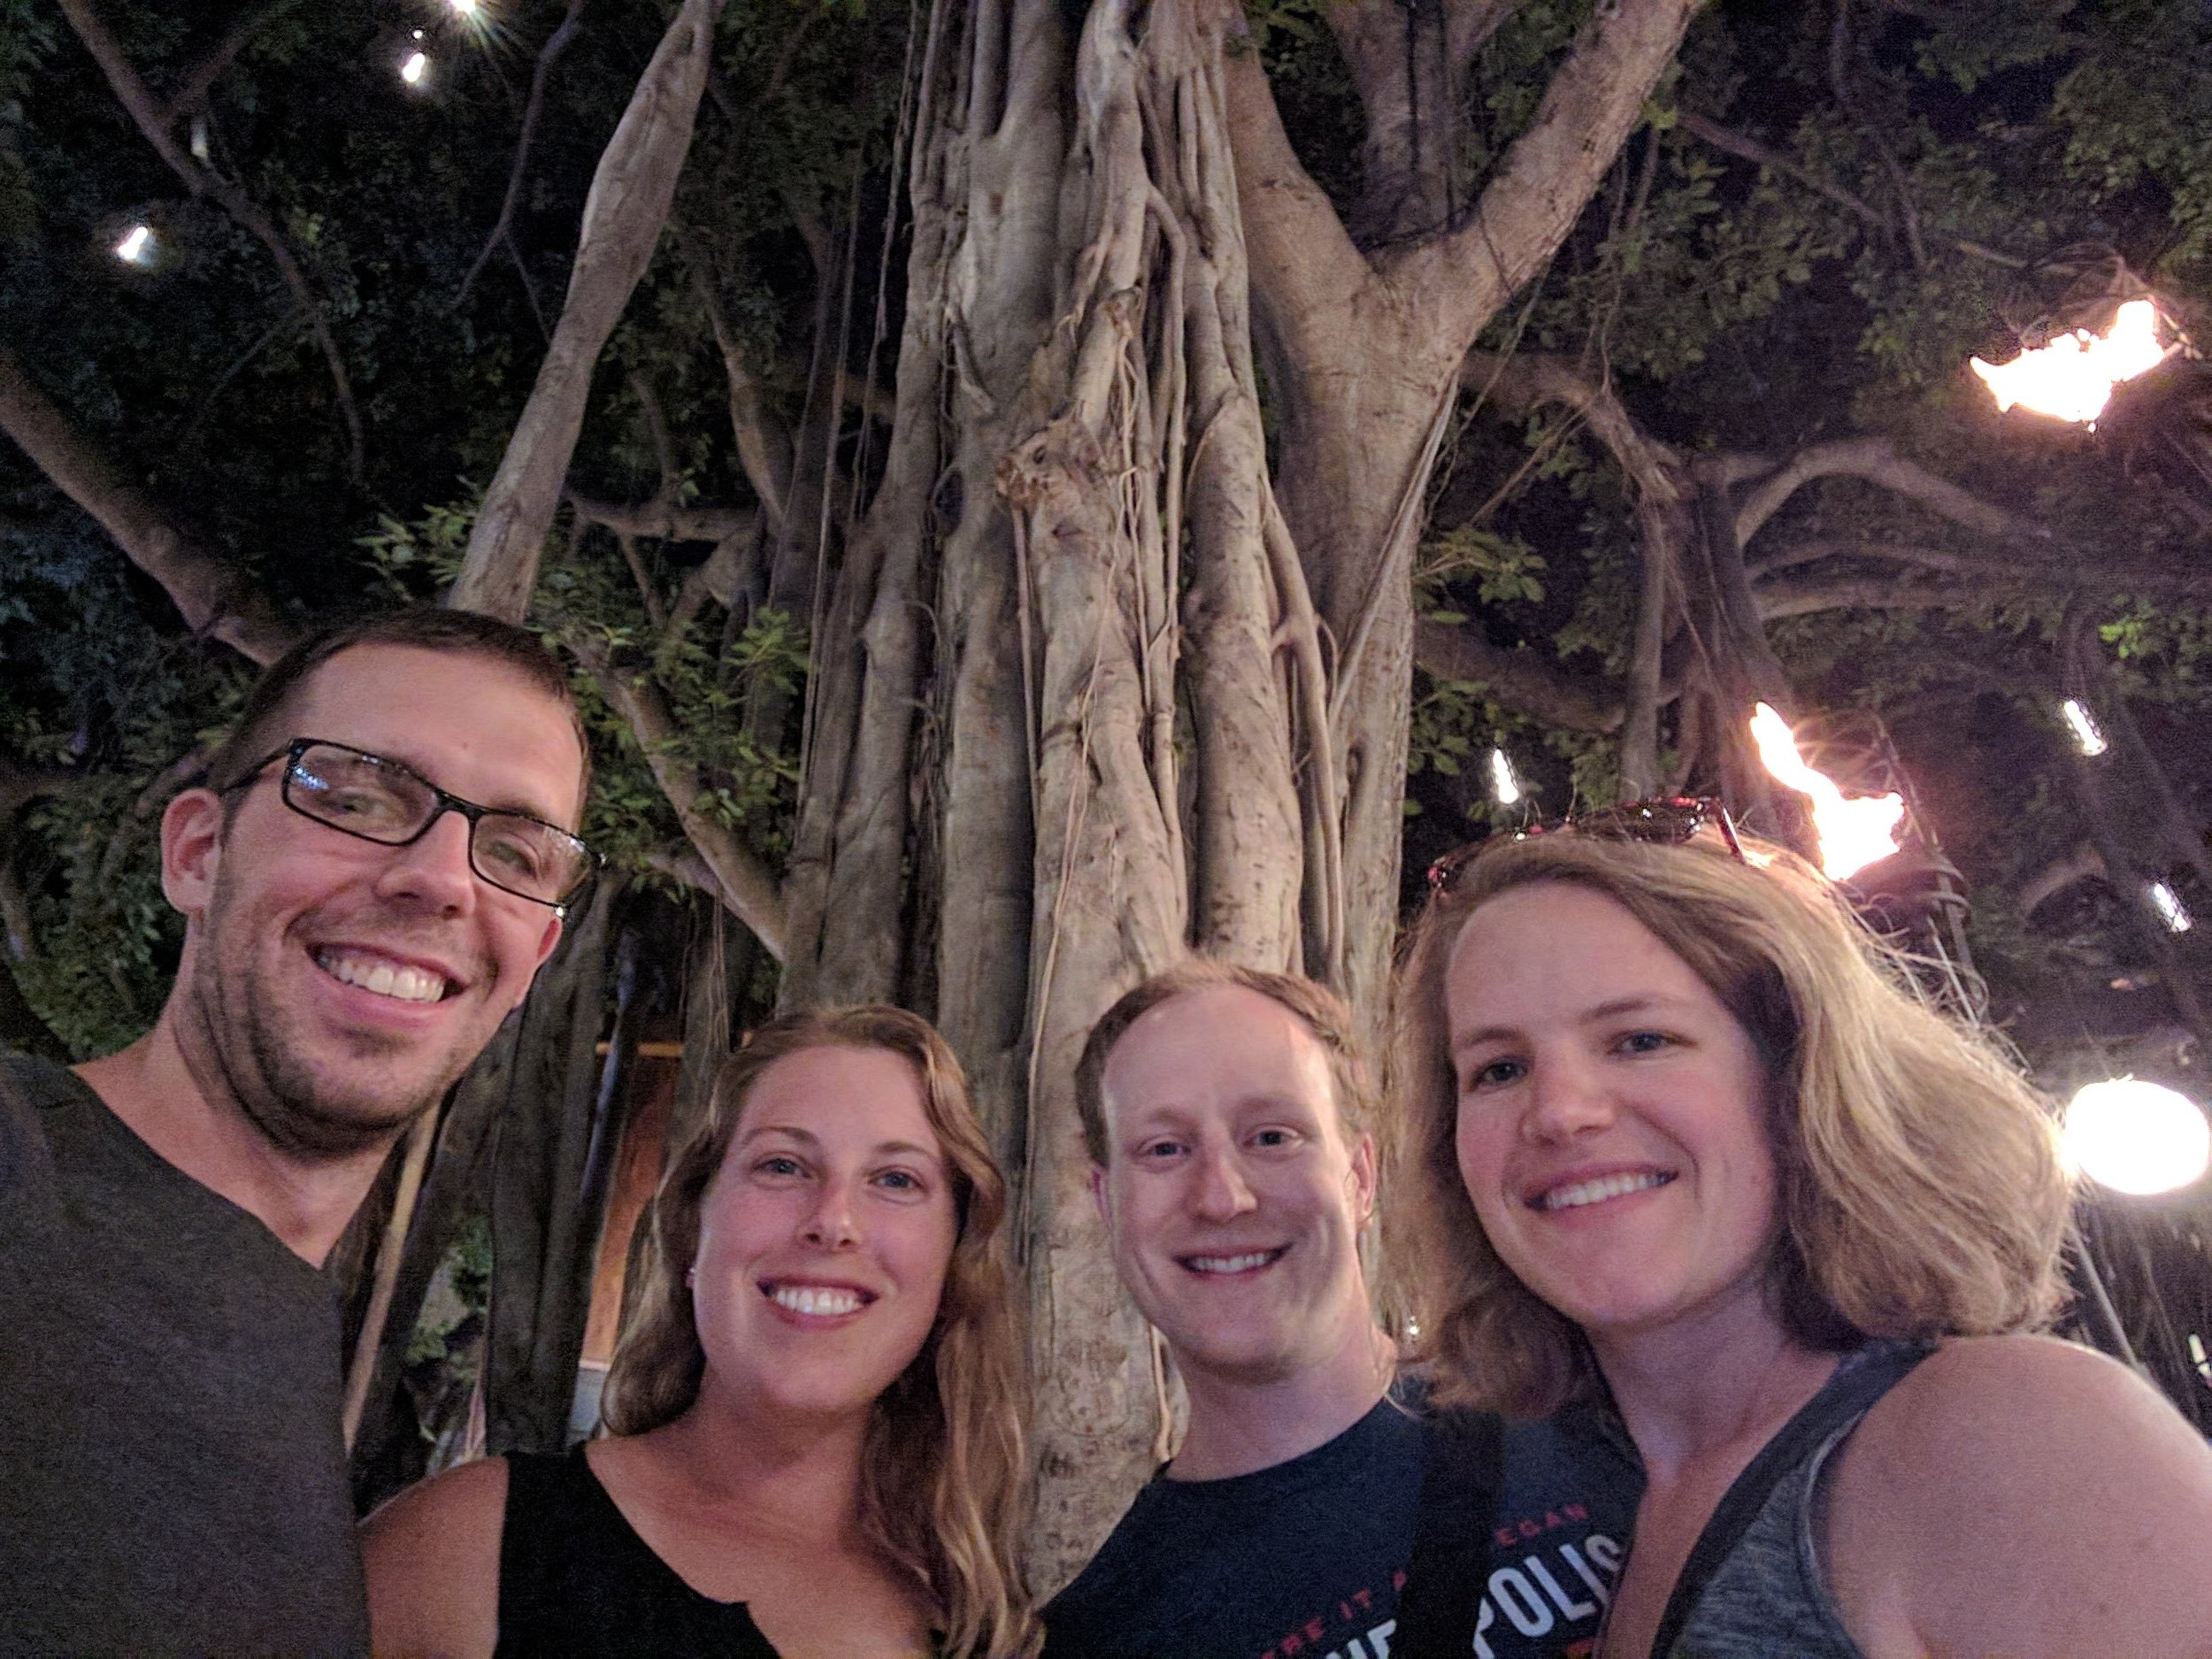 Jeff, Cara, Chip and Marie. Vacationing together since 2016.